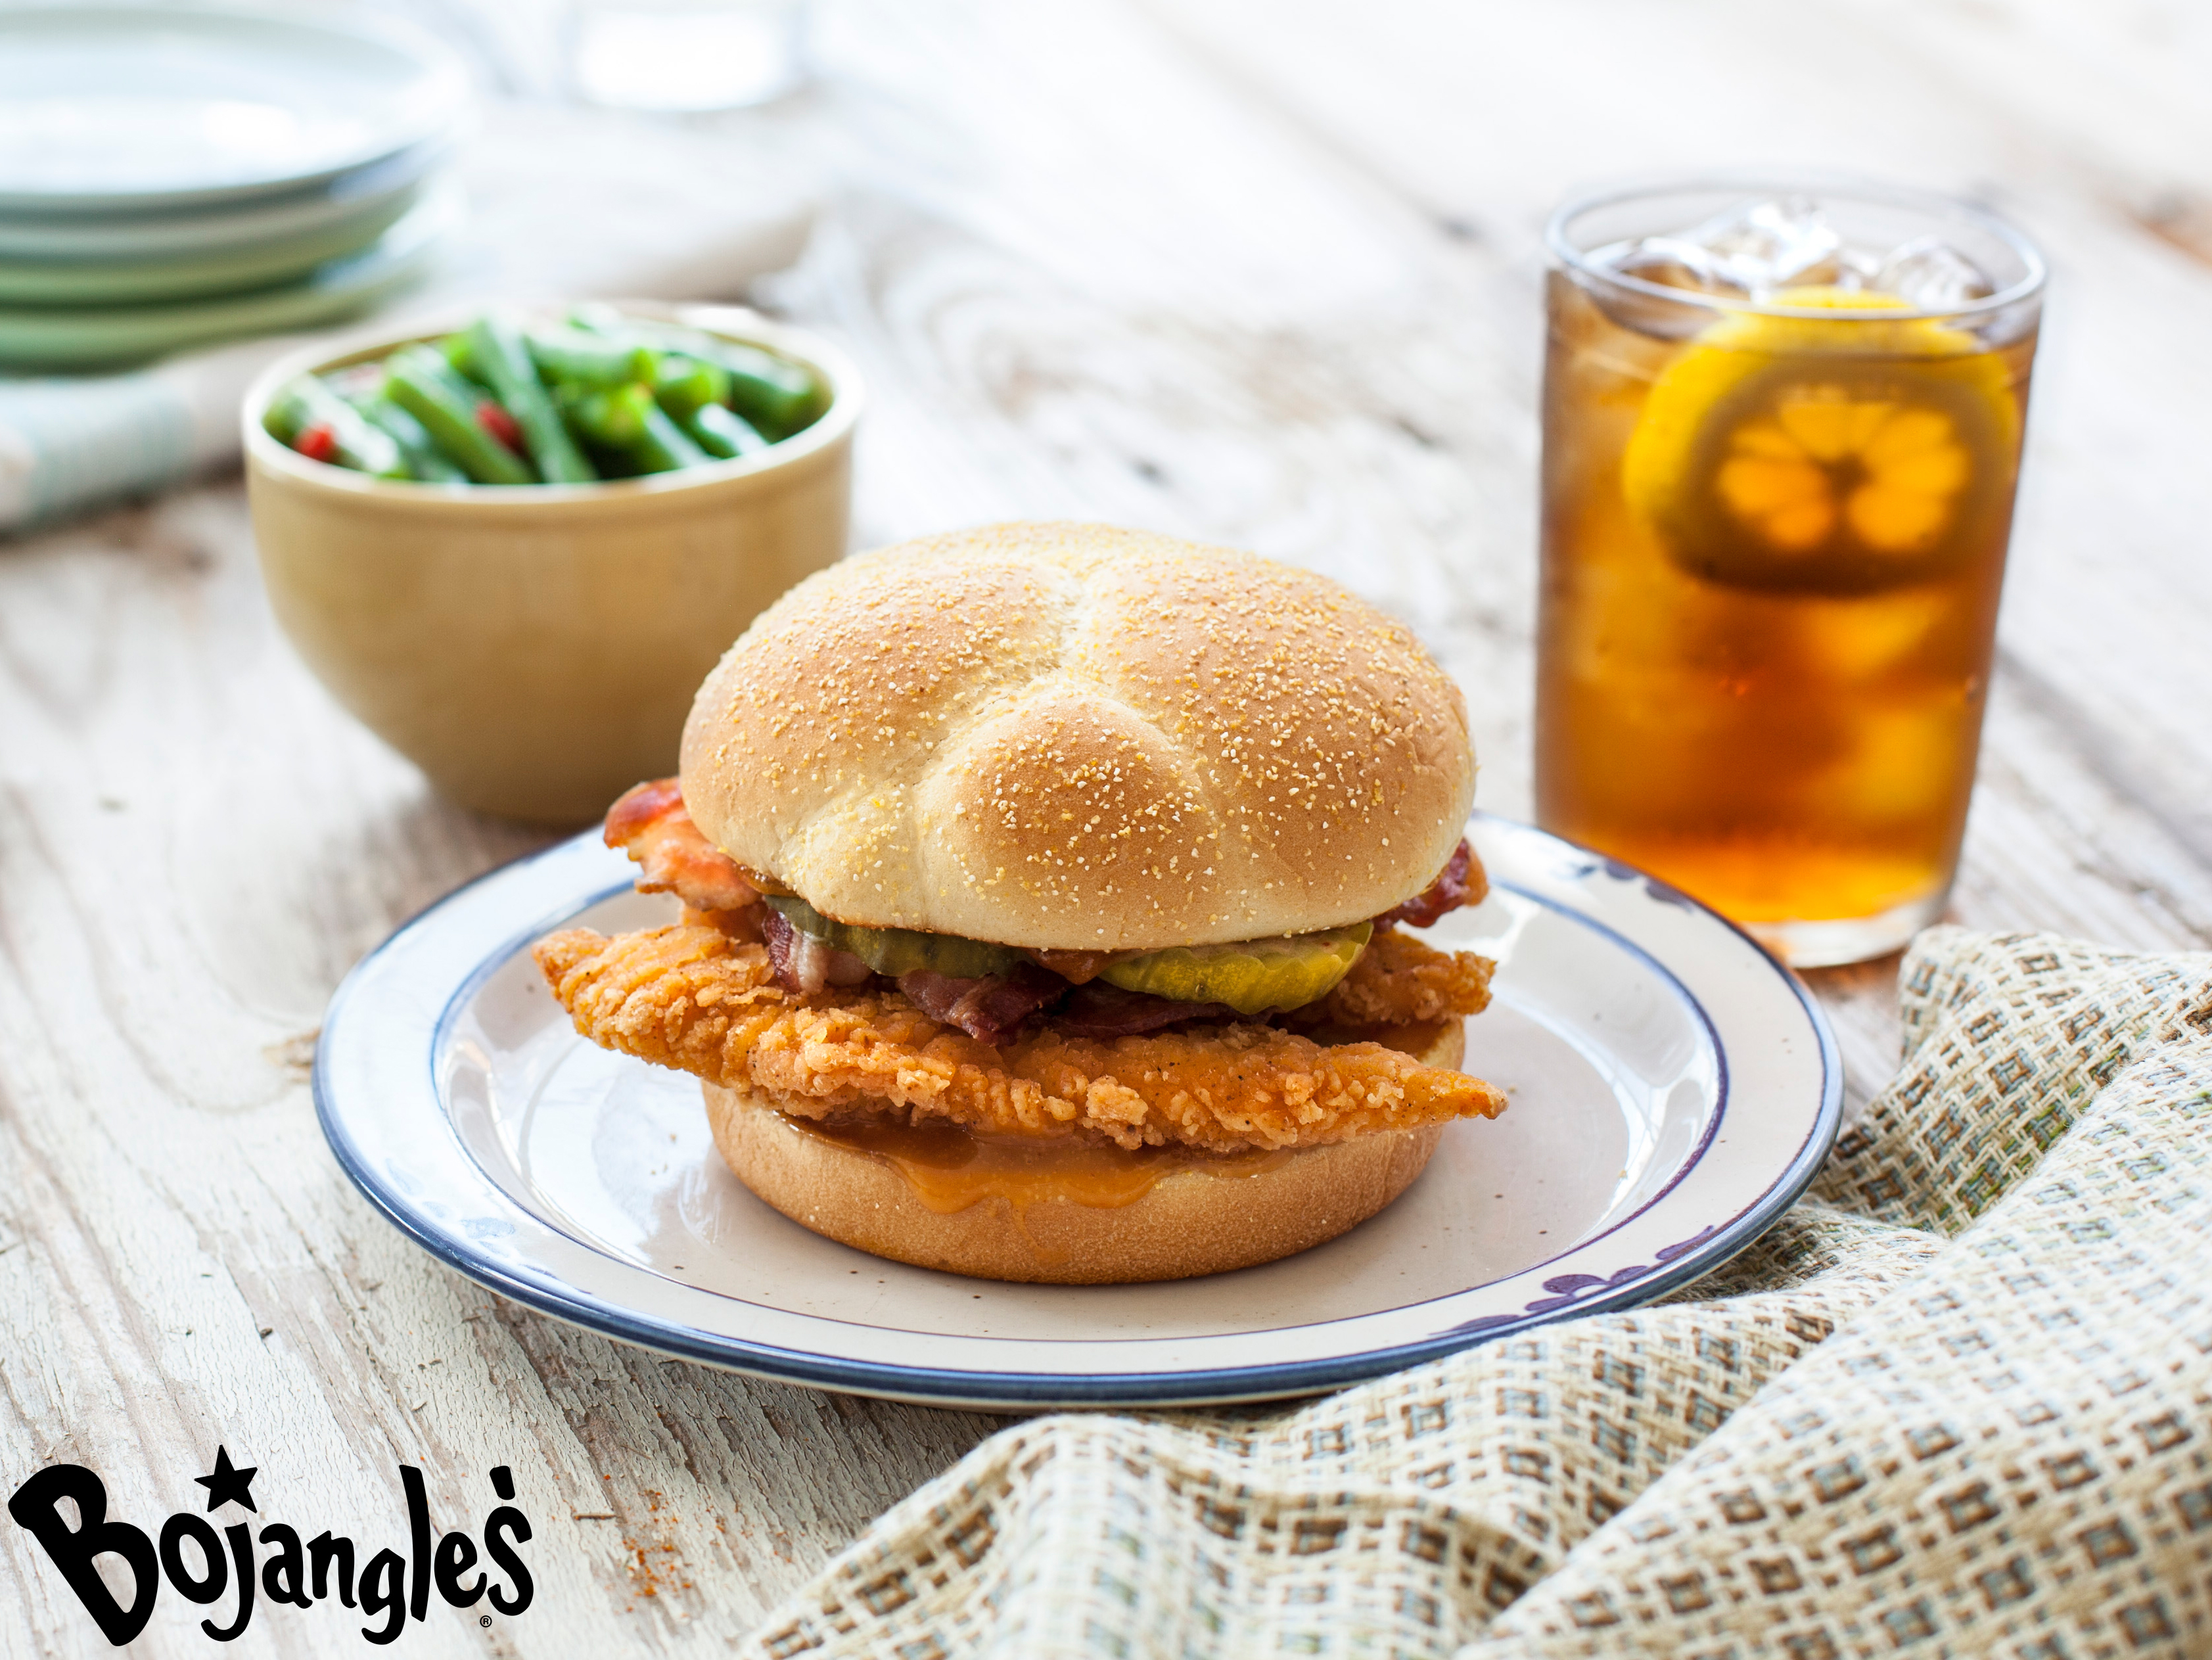 At Bojangles', it's our promise to always make life flavorful. And we have just the sandwich to do this – our newest limited time offering, the Bojangles' Chicken Supremes™ Sandwich. (Photo: Bojangles')